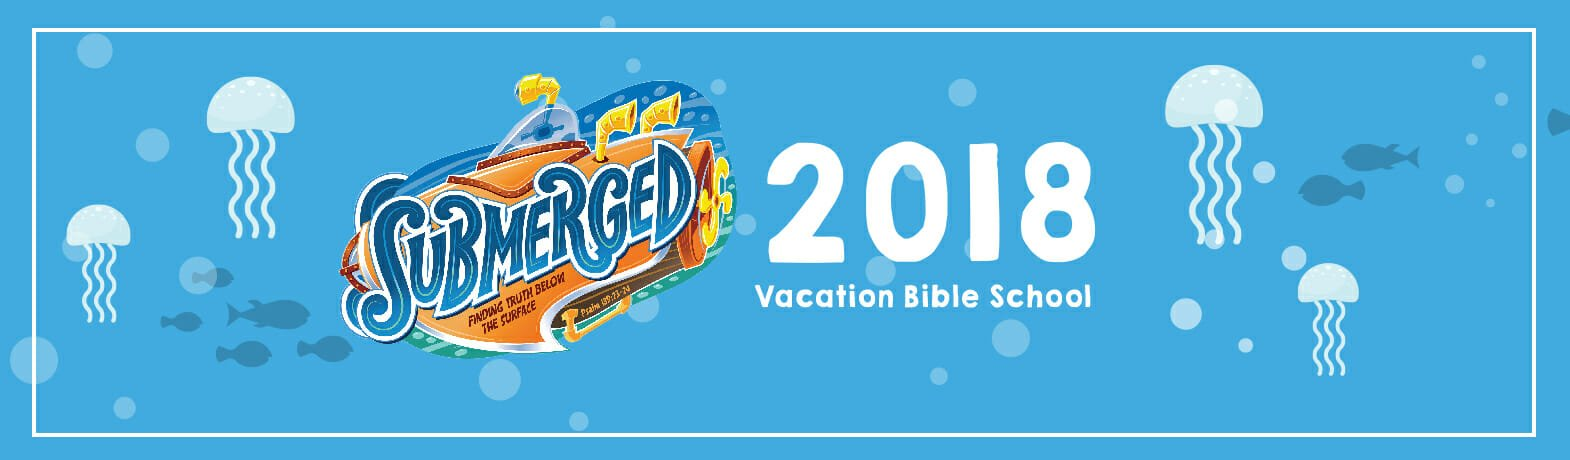 VBS 2018 - Submerged